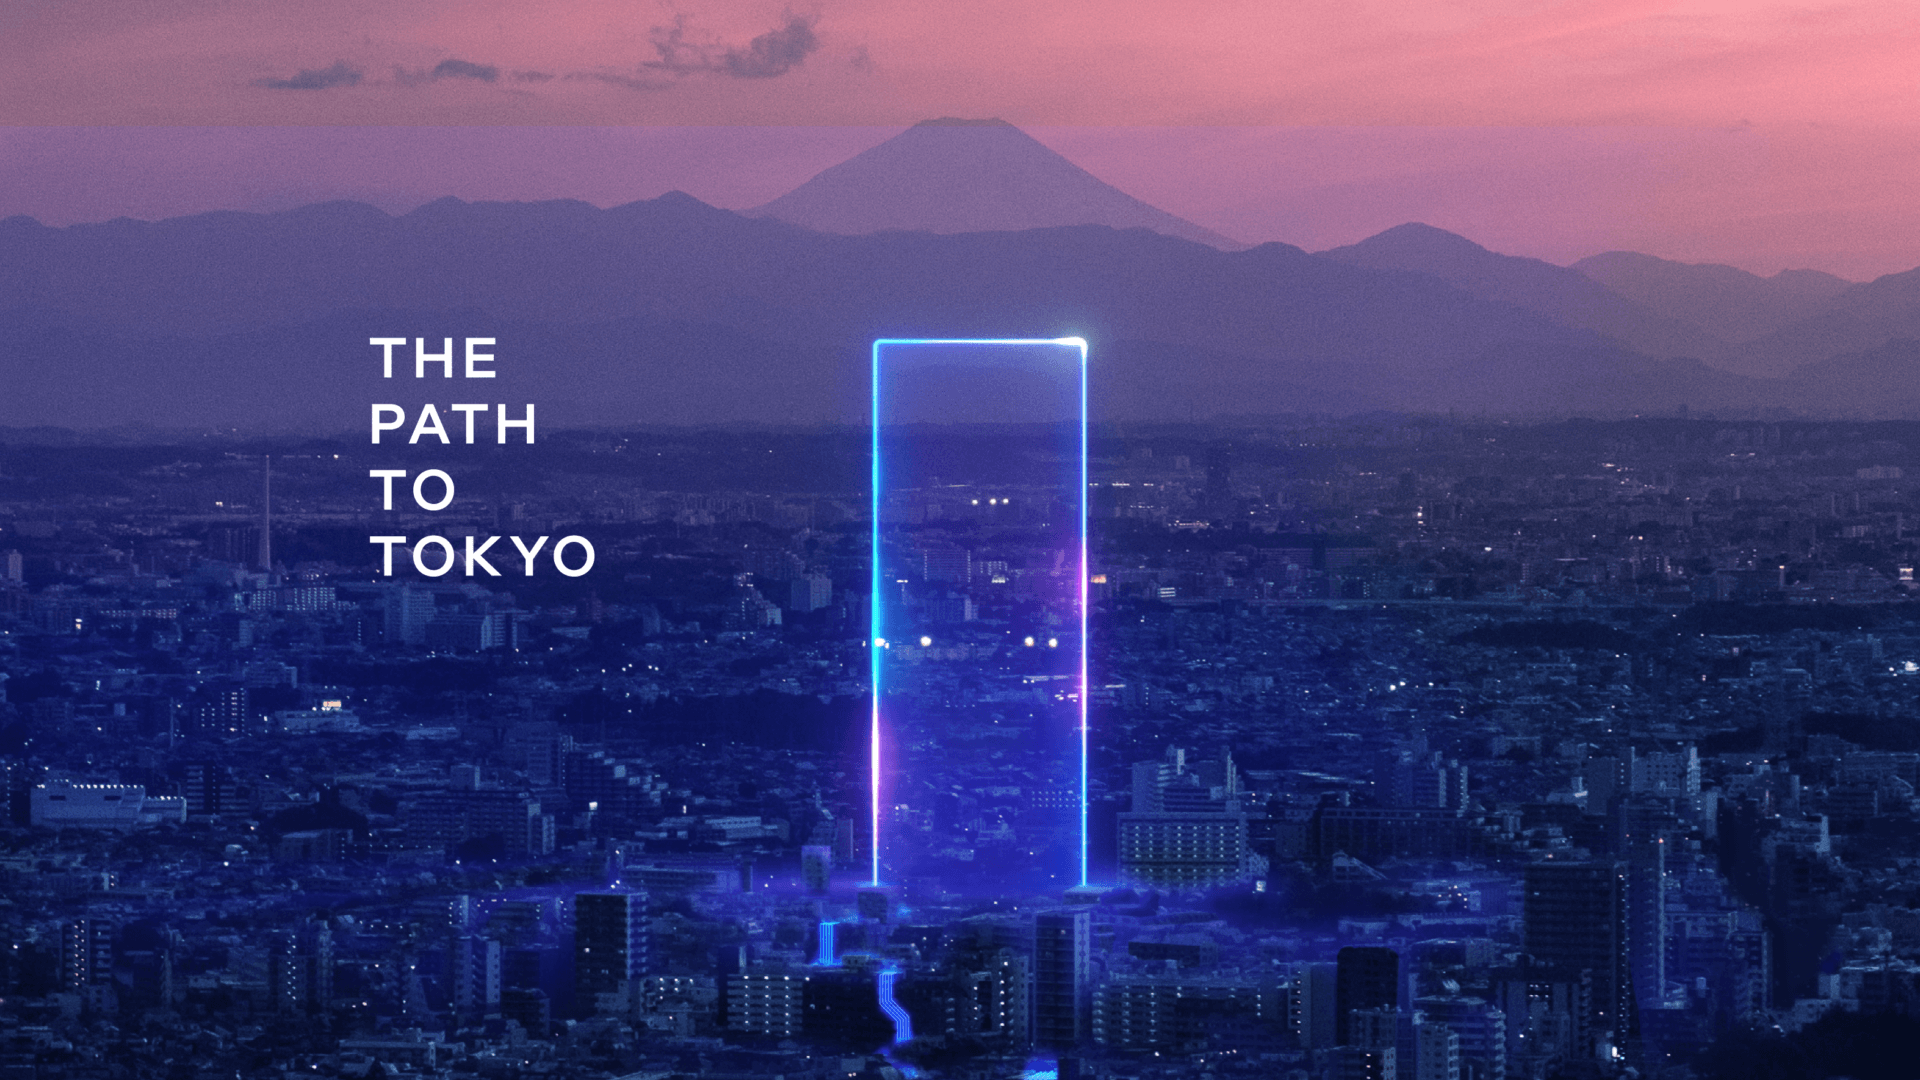 Intel World Open a Collaboration With the Tokyo 2020 Olympic Games